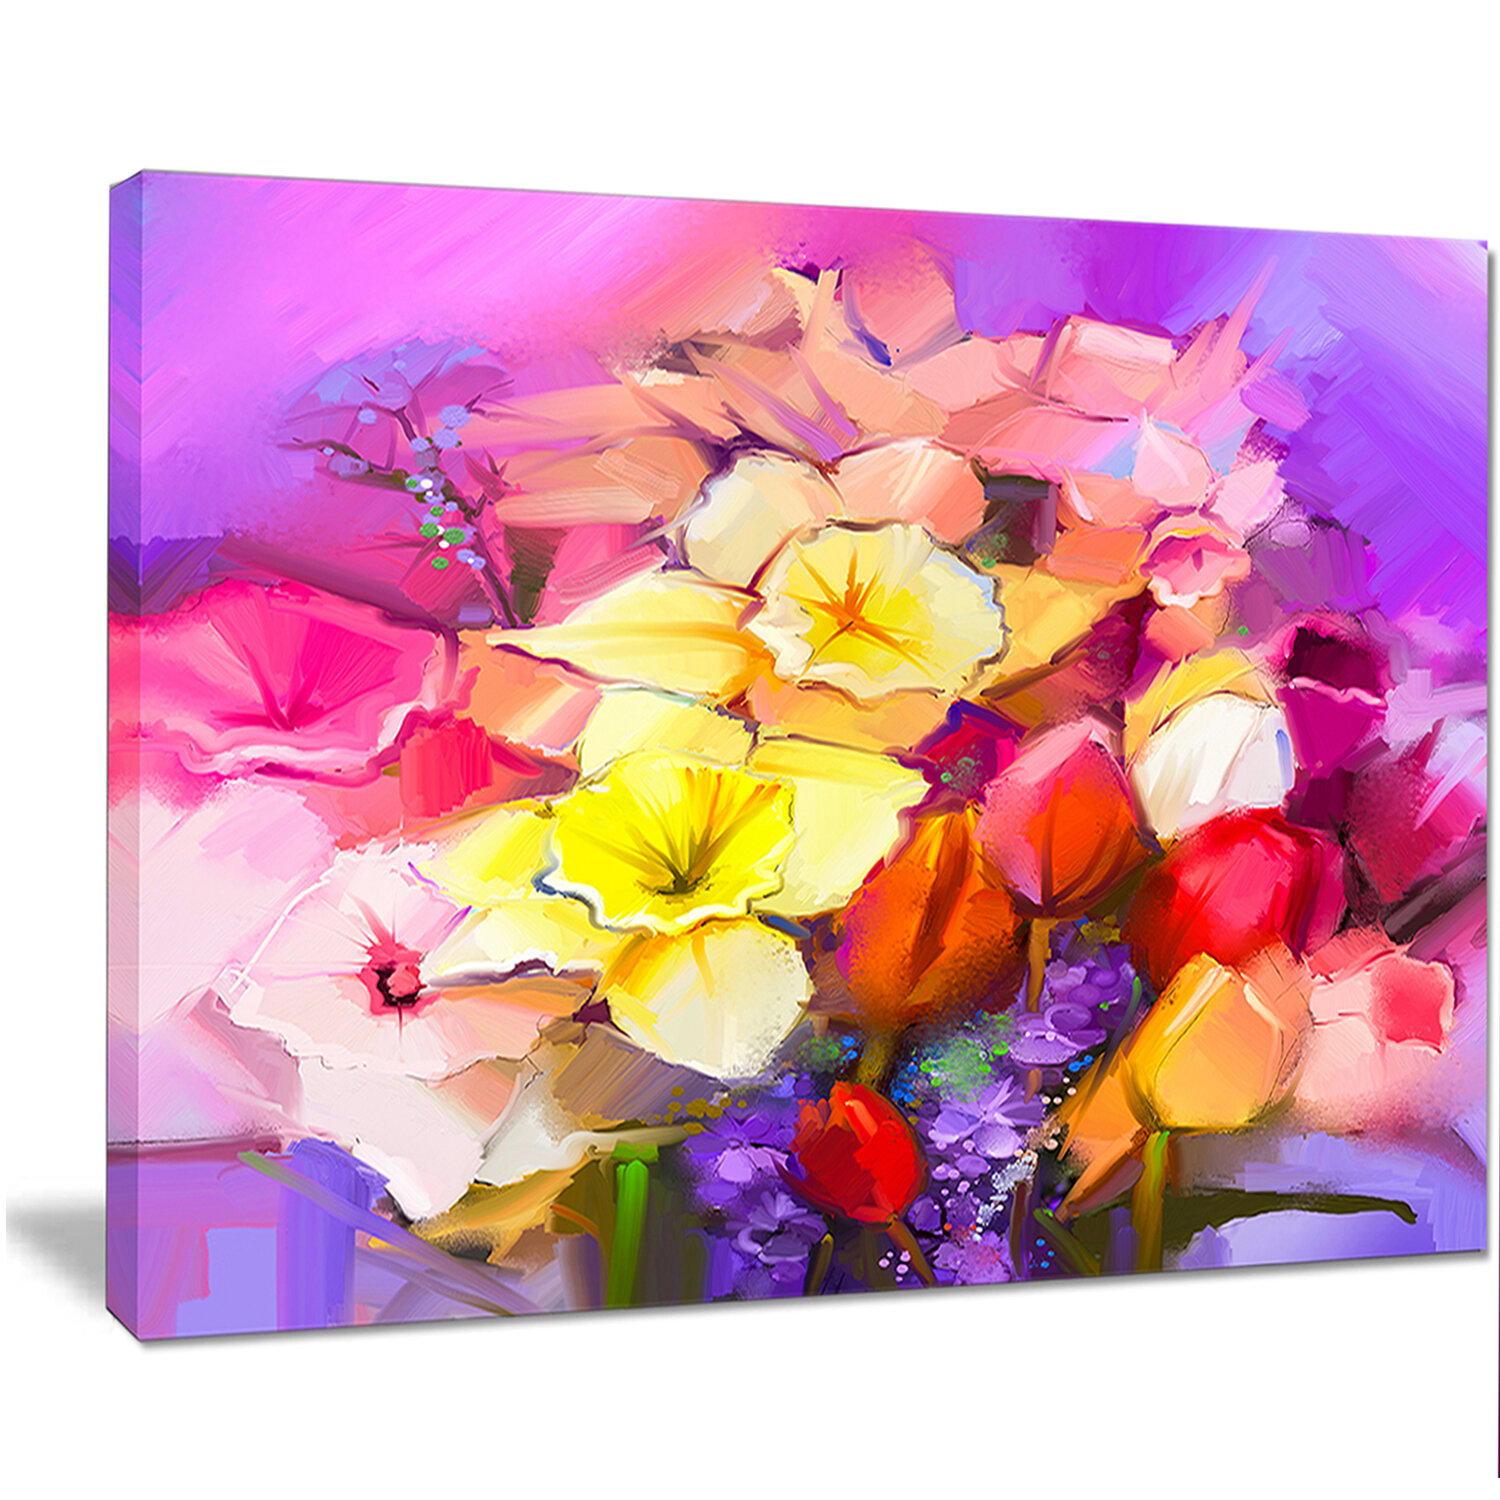 Designart bouquet of daffodil and tulip flowers painting print on designart bouquet of daffodil and tulip flowers painting print on wrapped canvas wayfair izmirmasajfo